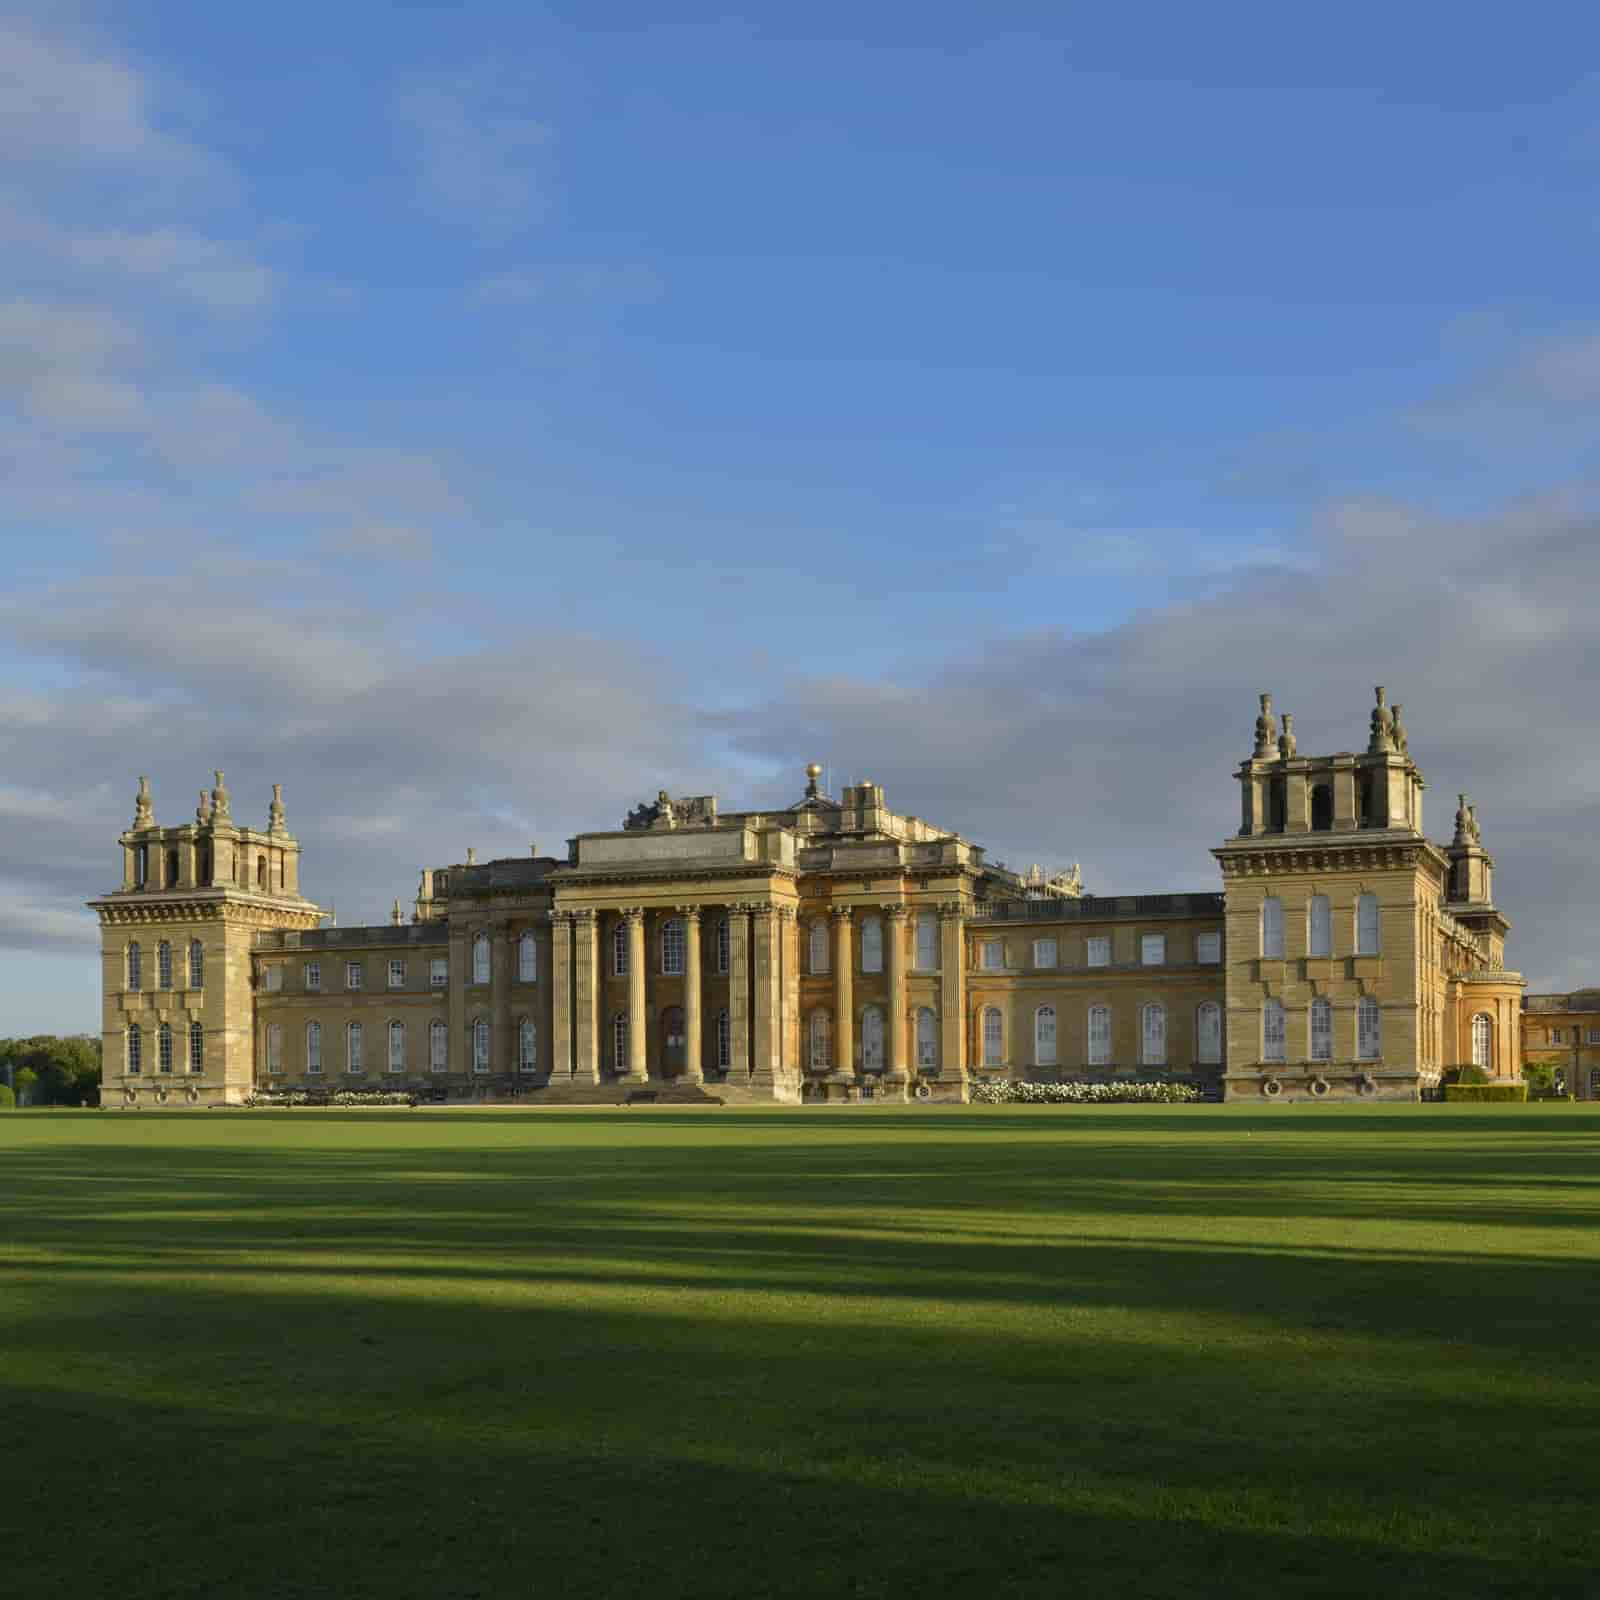 Blenheim Palace exterior against the blue sky, showing lush green acres in front.